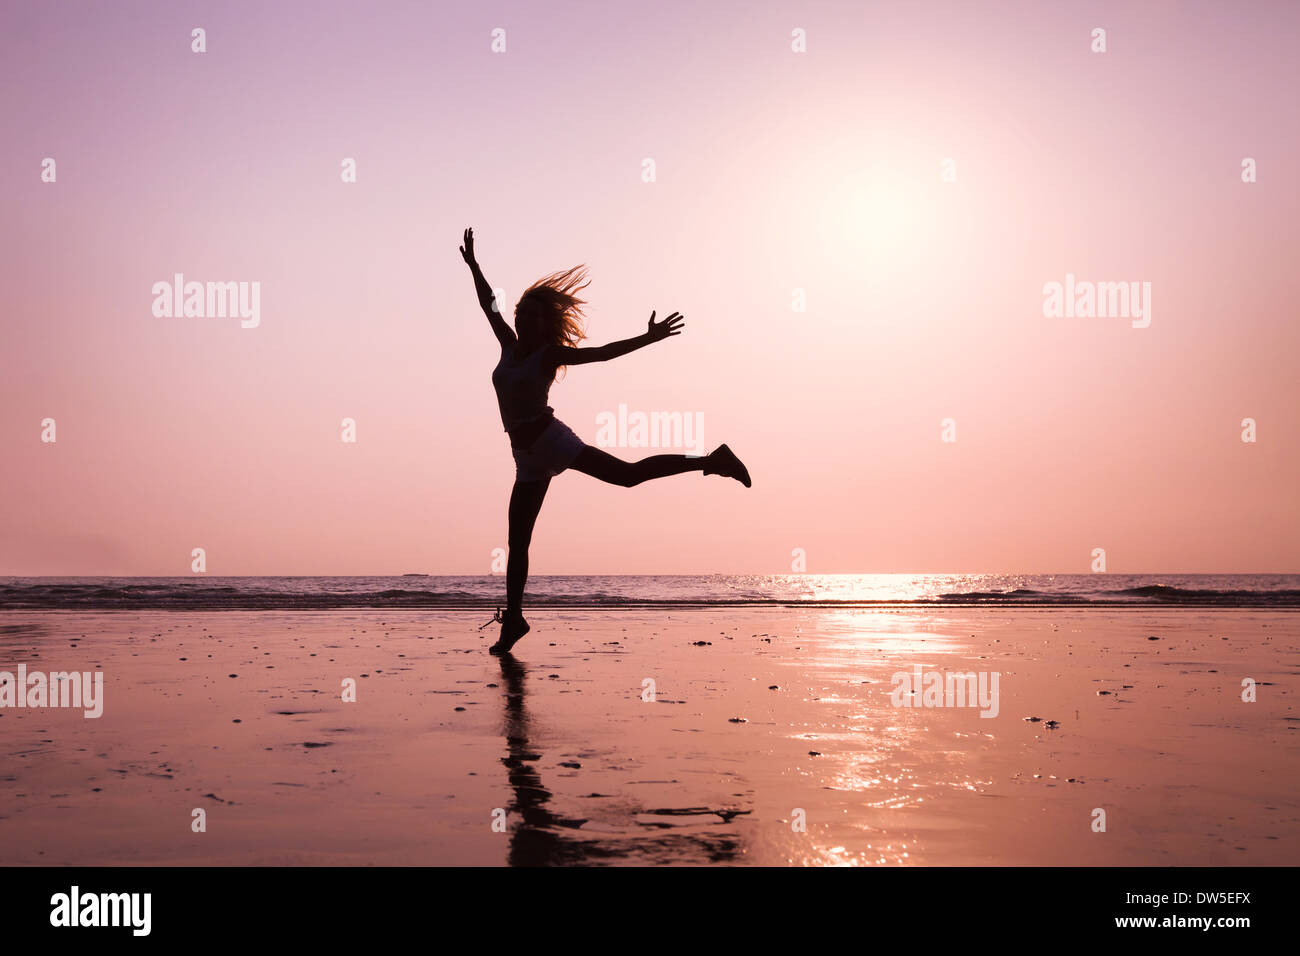 healthy lifestyle concept - Stock Image